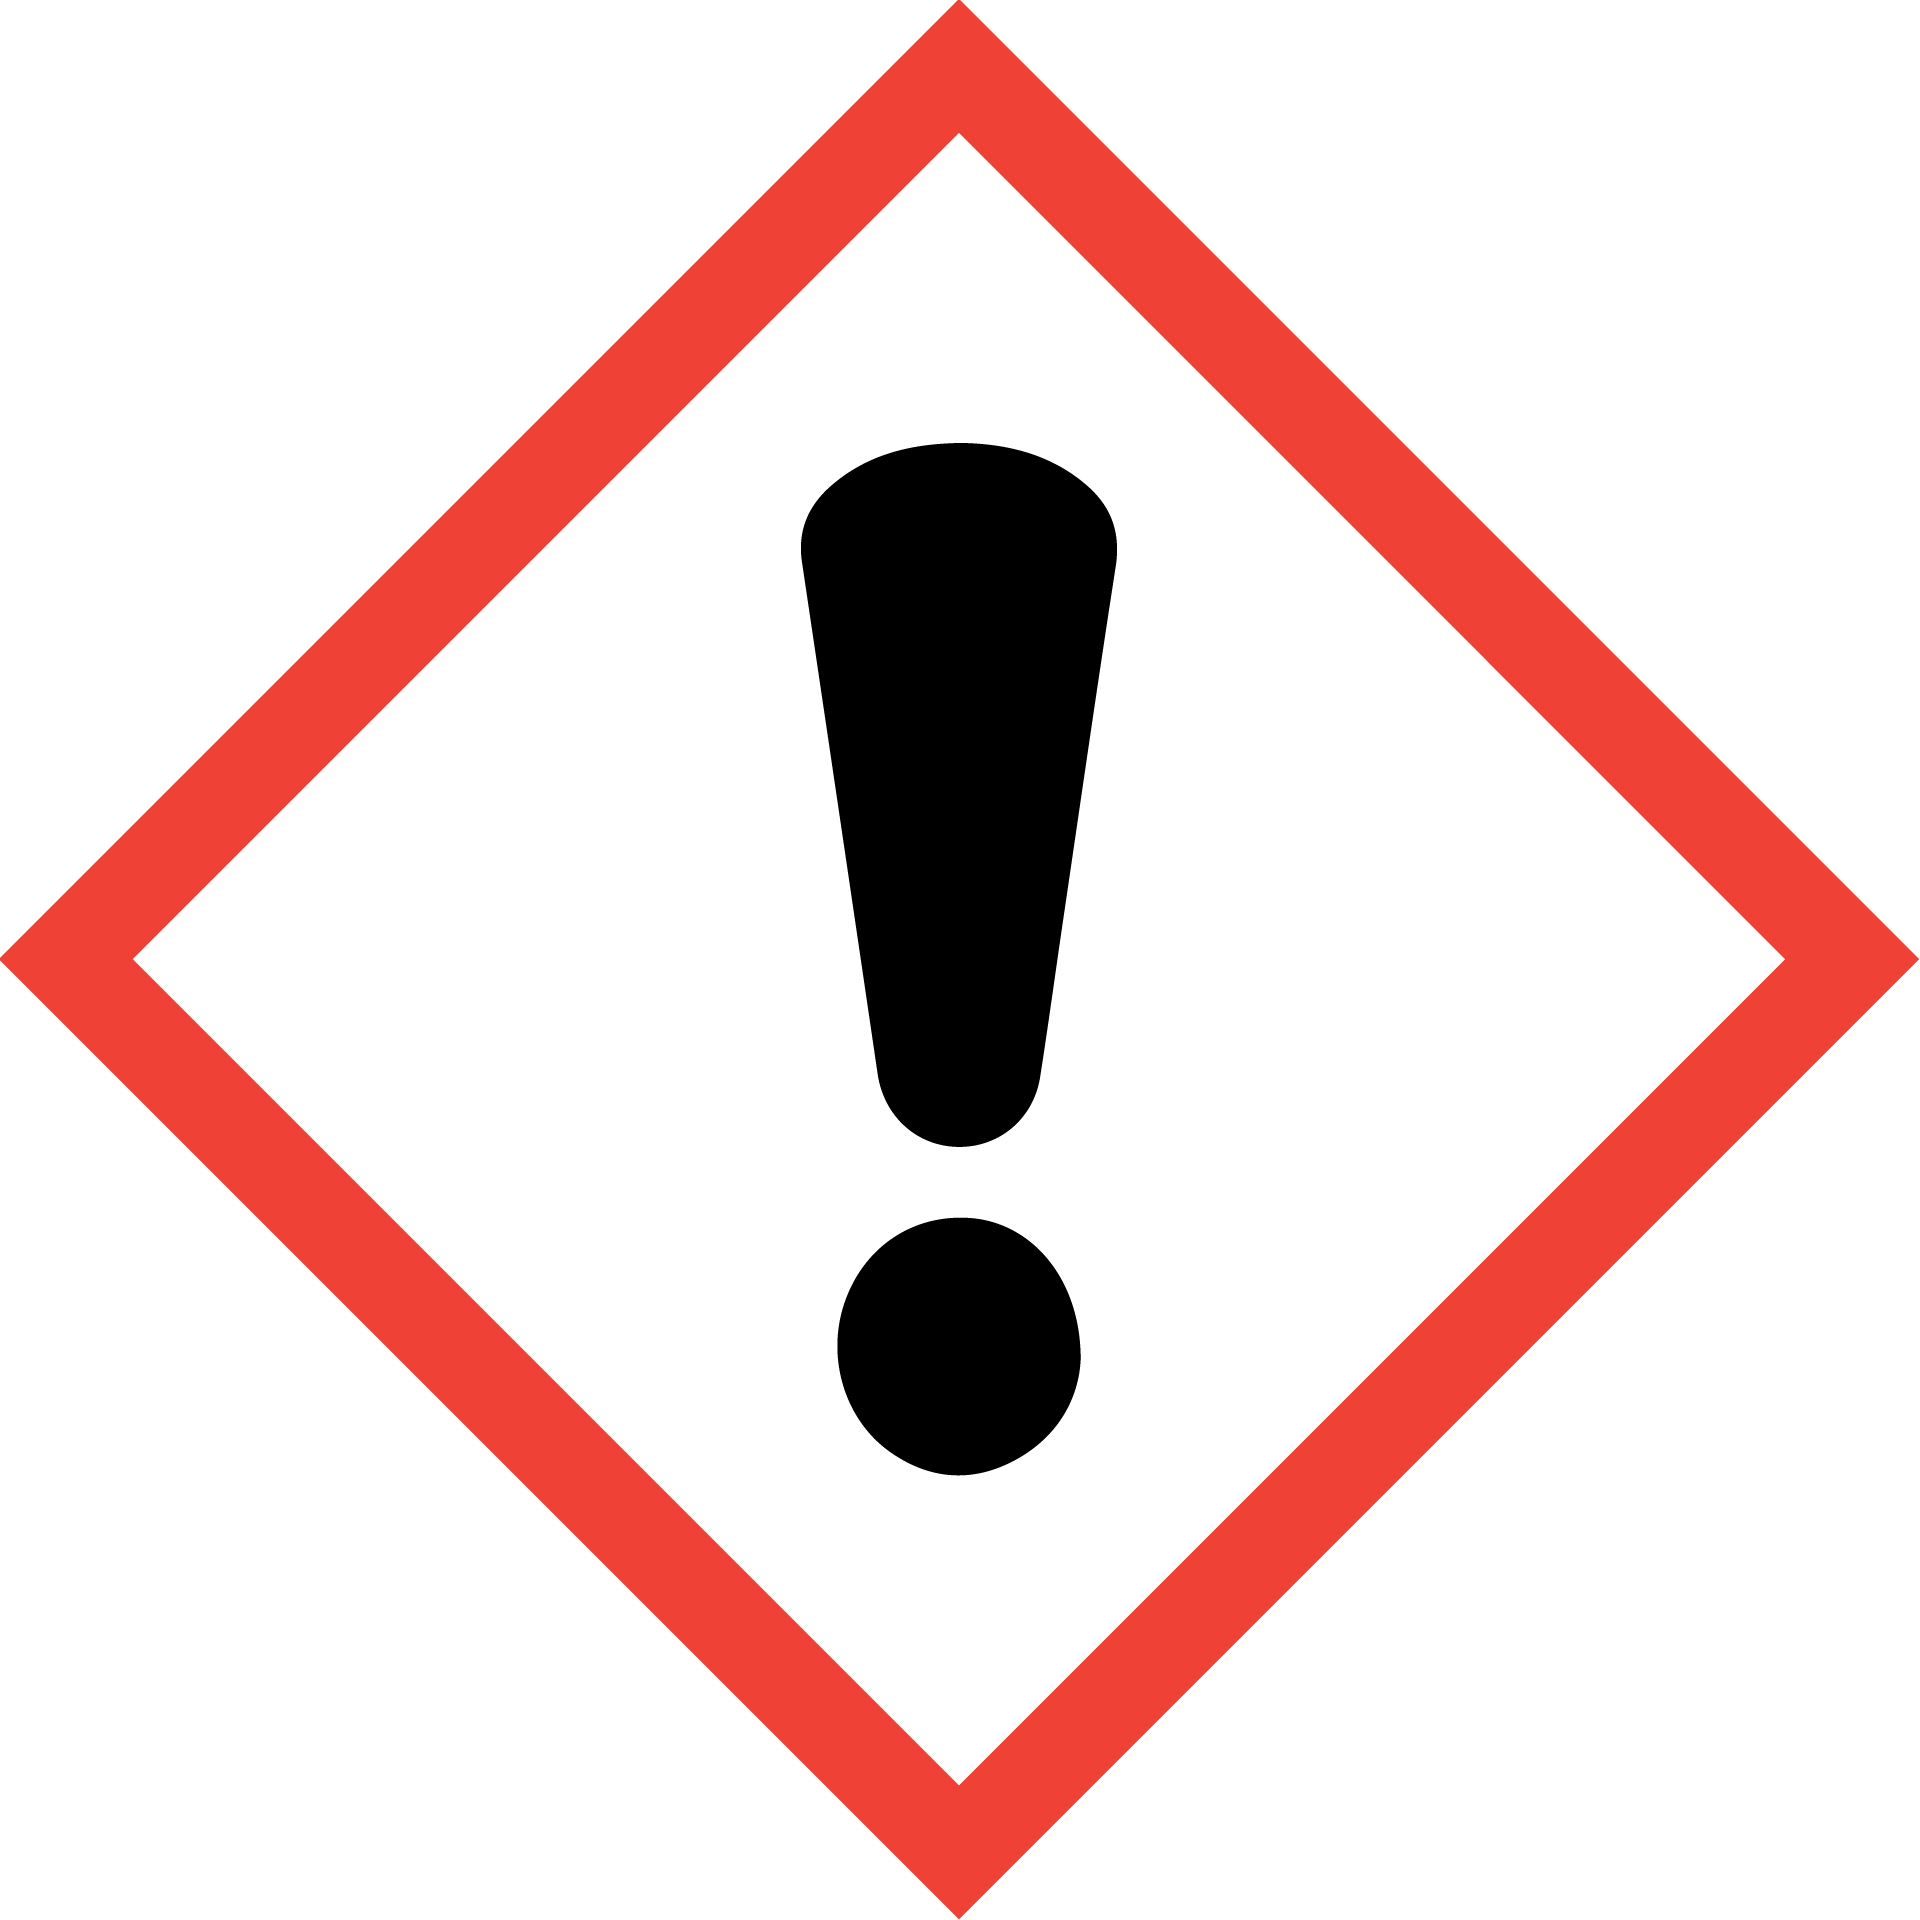 1920x1920 Danger Clipart Chemical Safety